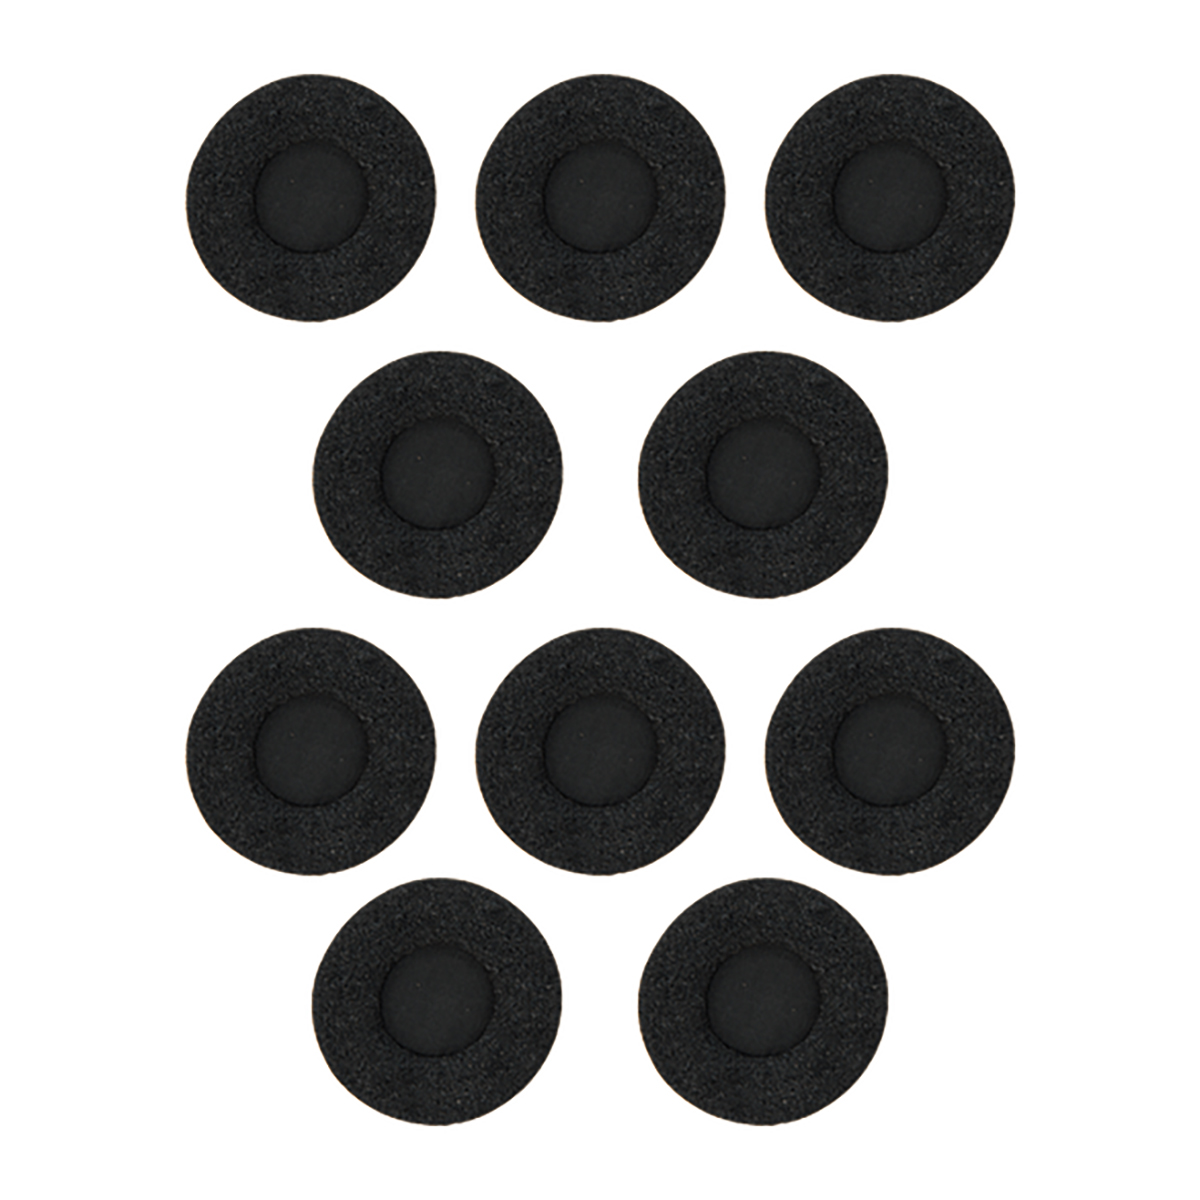 Jabra Foam Ear Cushion for BIZ 2300 Pack of 10